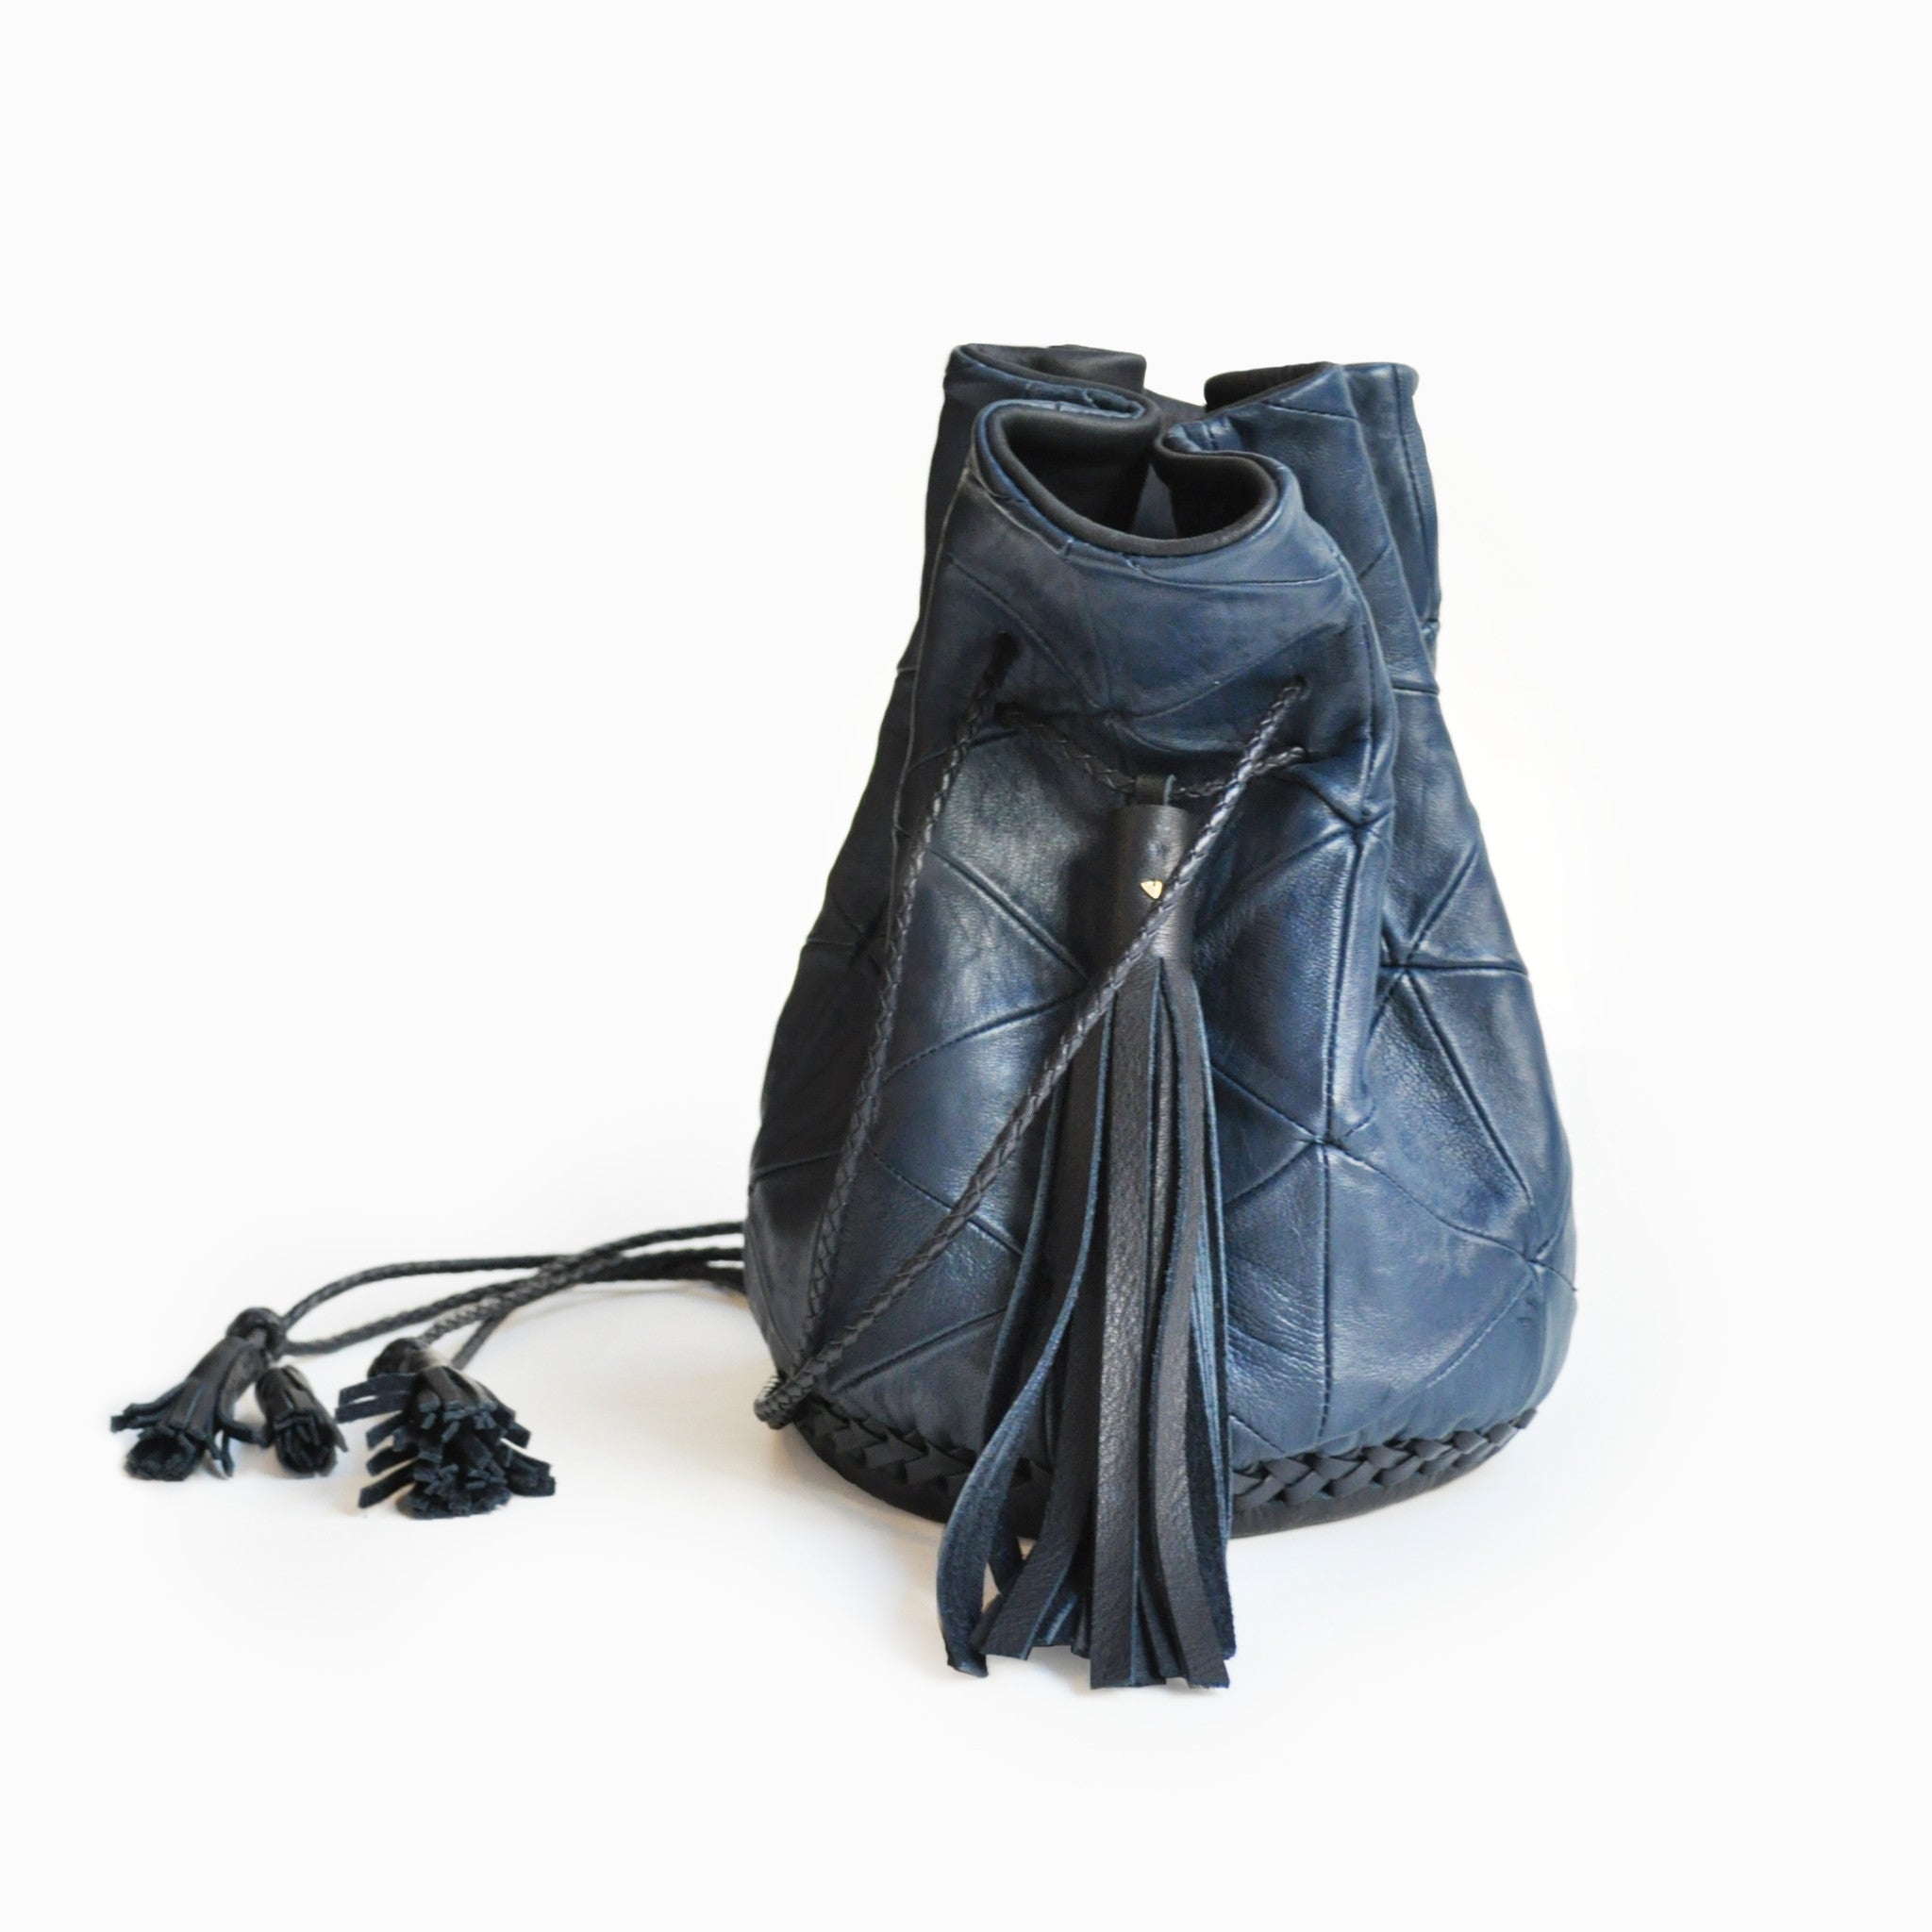 Navy Dark Blue Leather Triangle Patchwork Bullet Bag Wendy Nichol Leather Handbag Purse Designer Barneys Barney's Bucket Bag Handmade in NYC New York City High Quality leather Draw String Drawstring Pouch  Large Fringe Tassel Tassels